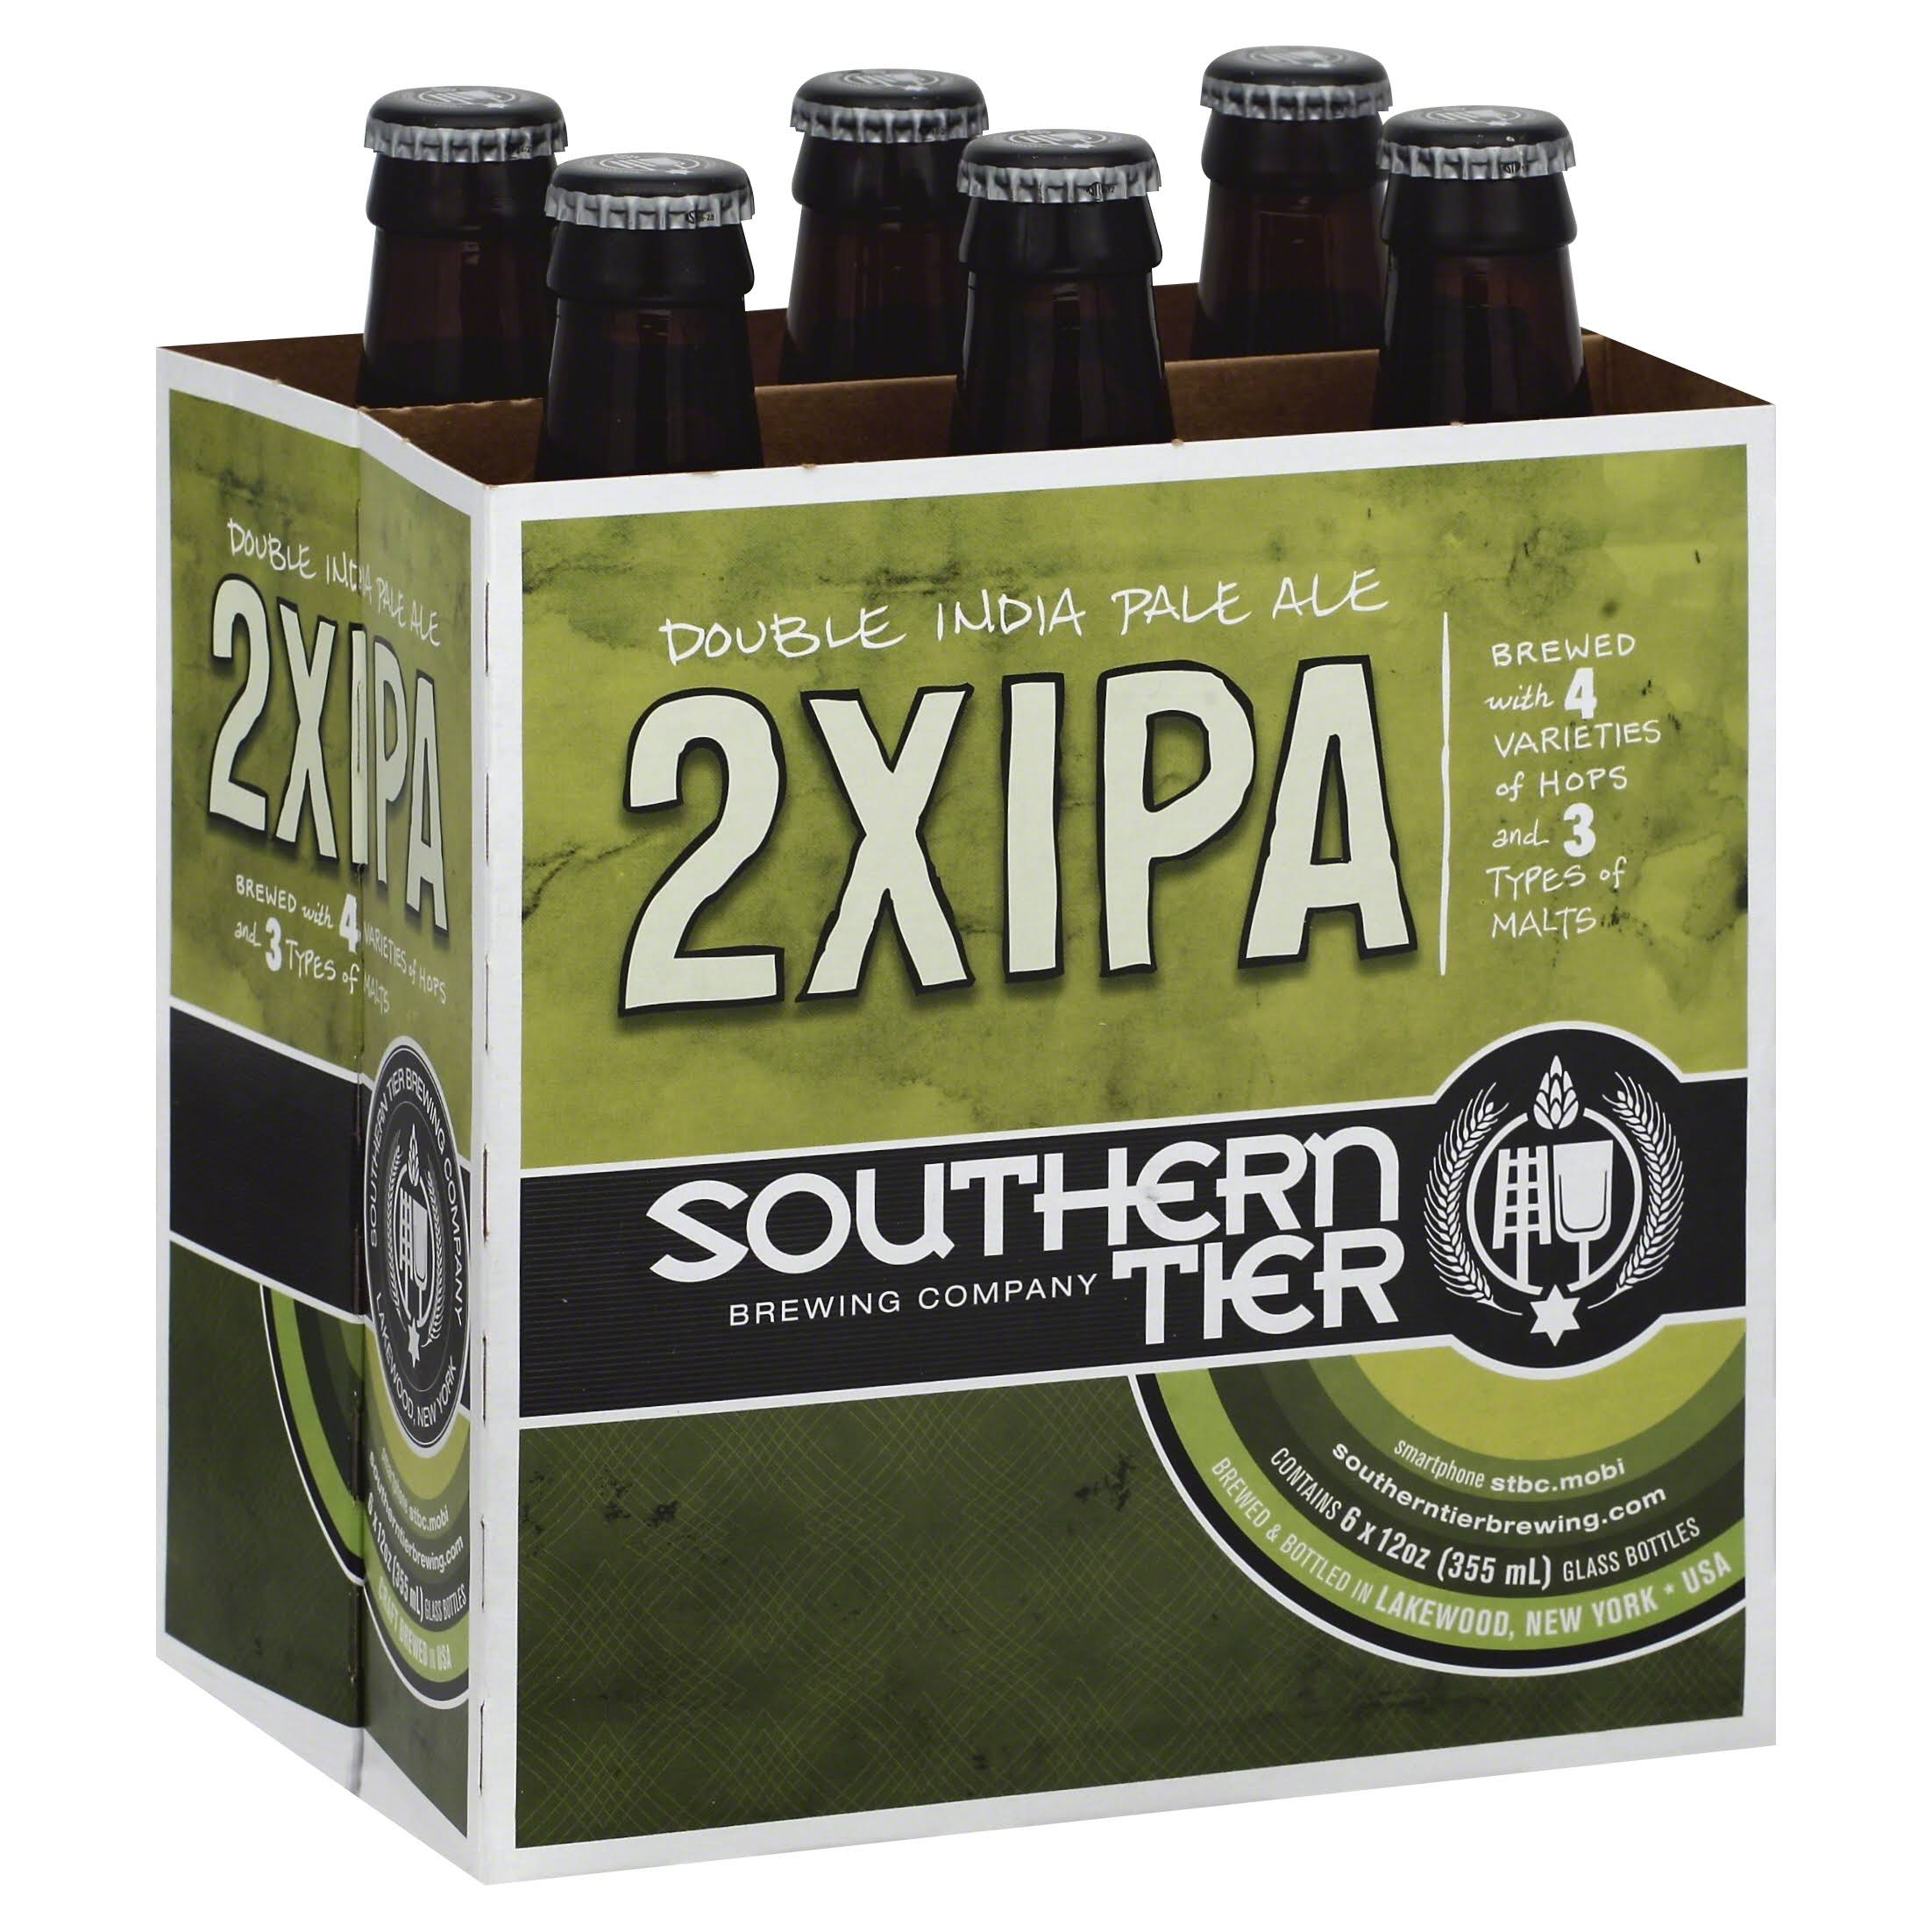 Southern Tier Ale, Double India Pale, 2XIPA - 6 pack, 12 oz bottles